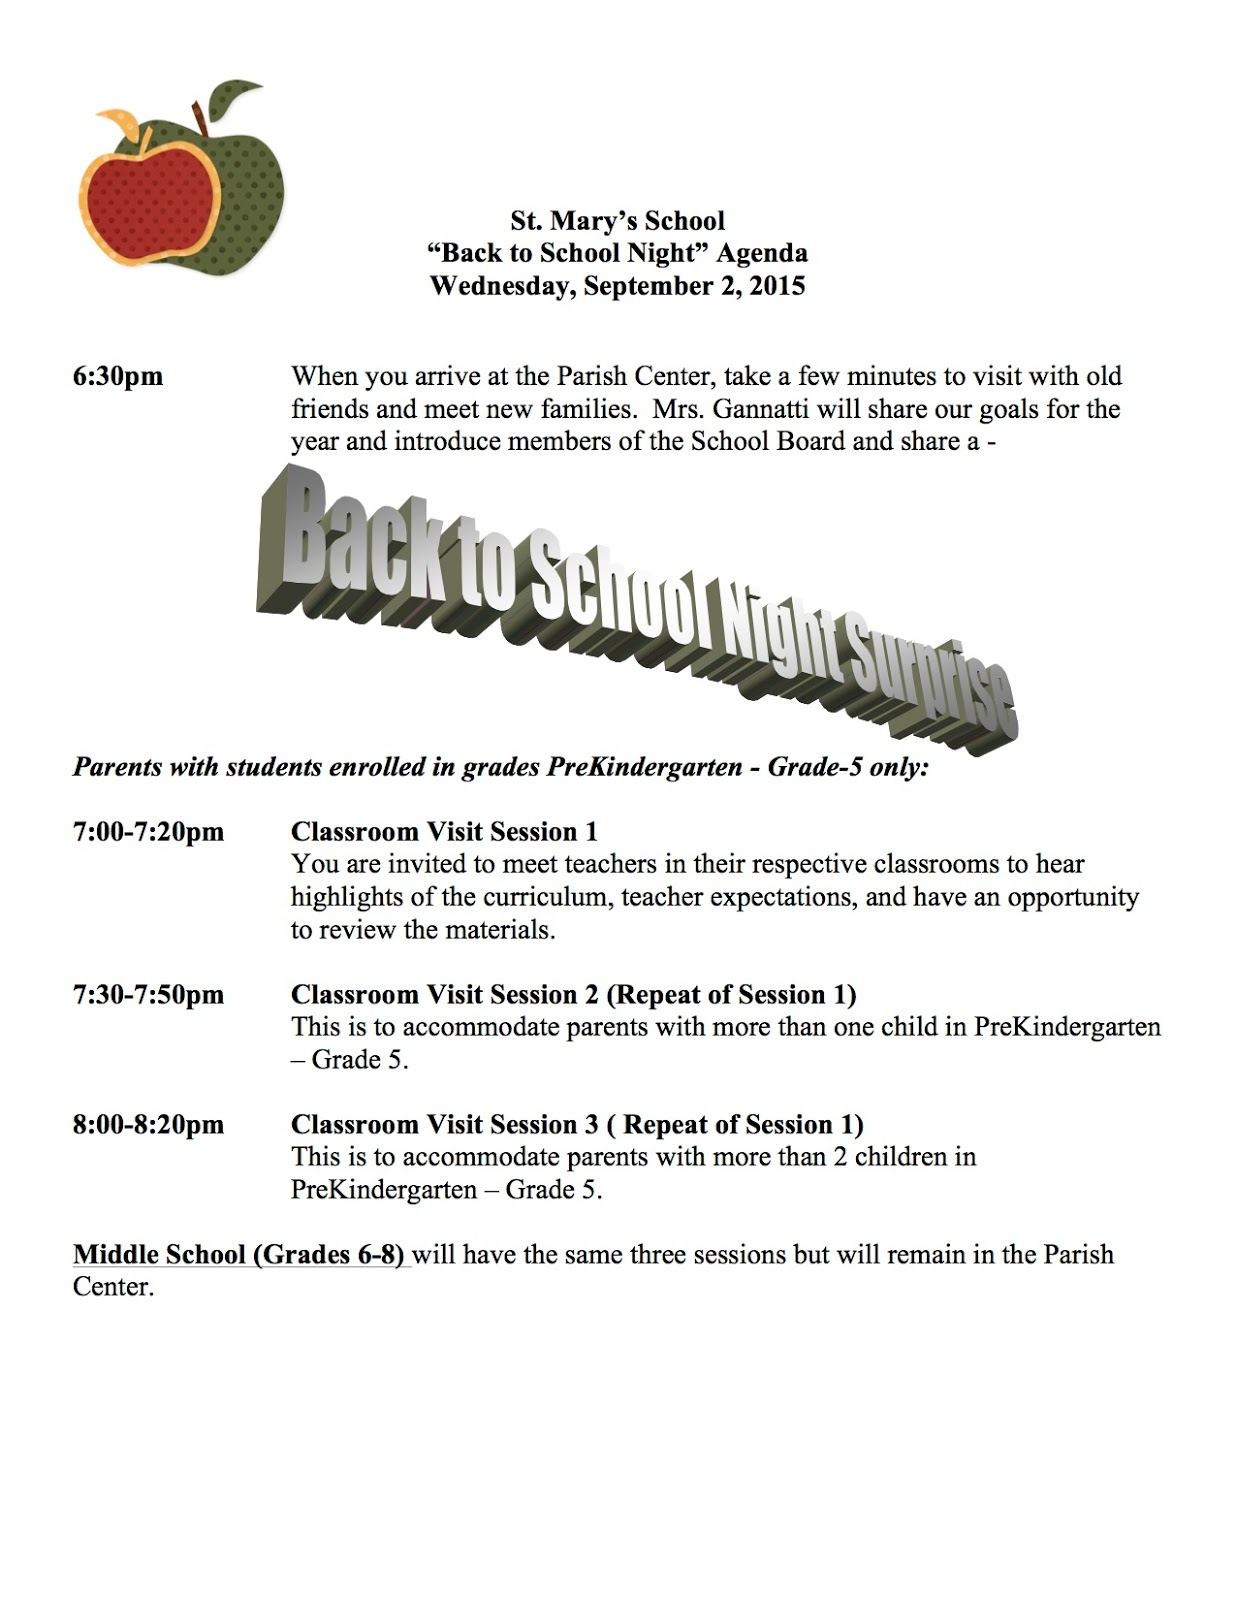 Saint marys school news announcements august 2015 parentteacher conferences in november friday 94 school mass at 9am all are welcome no physical education uniforms should be worn to mass altavistaventures Images